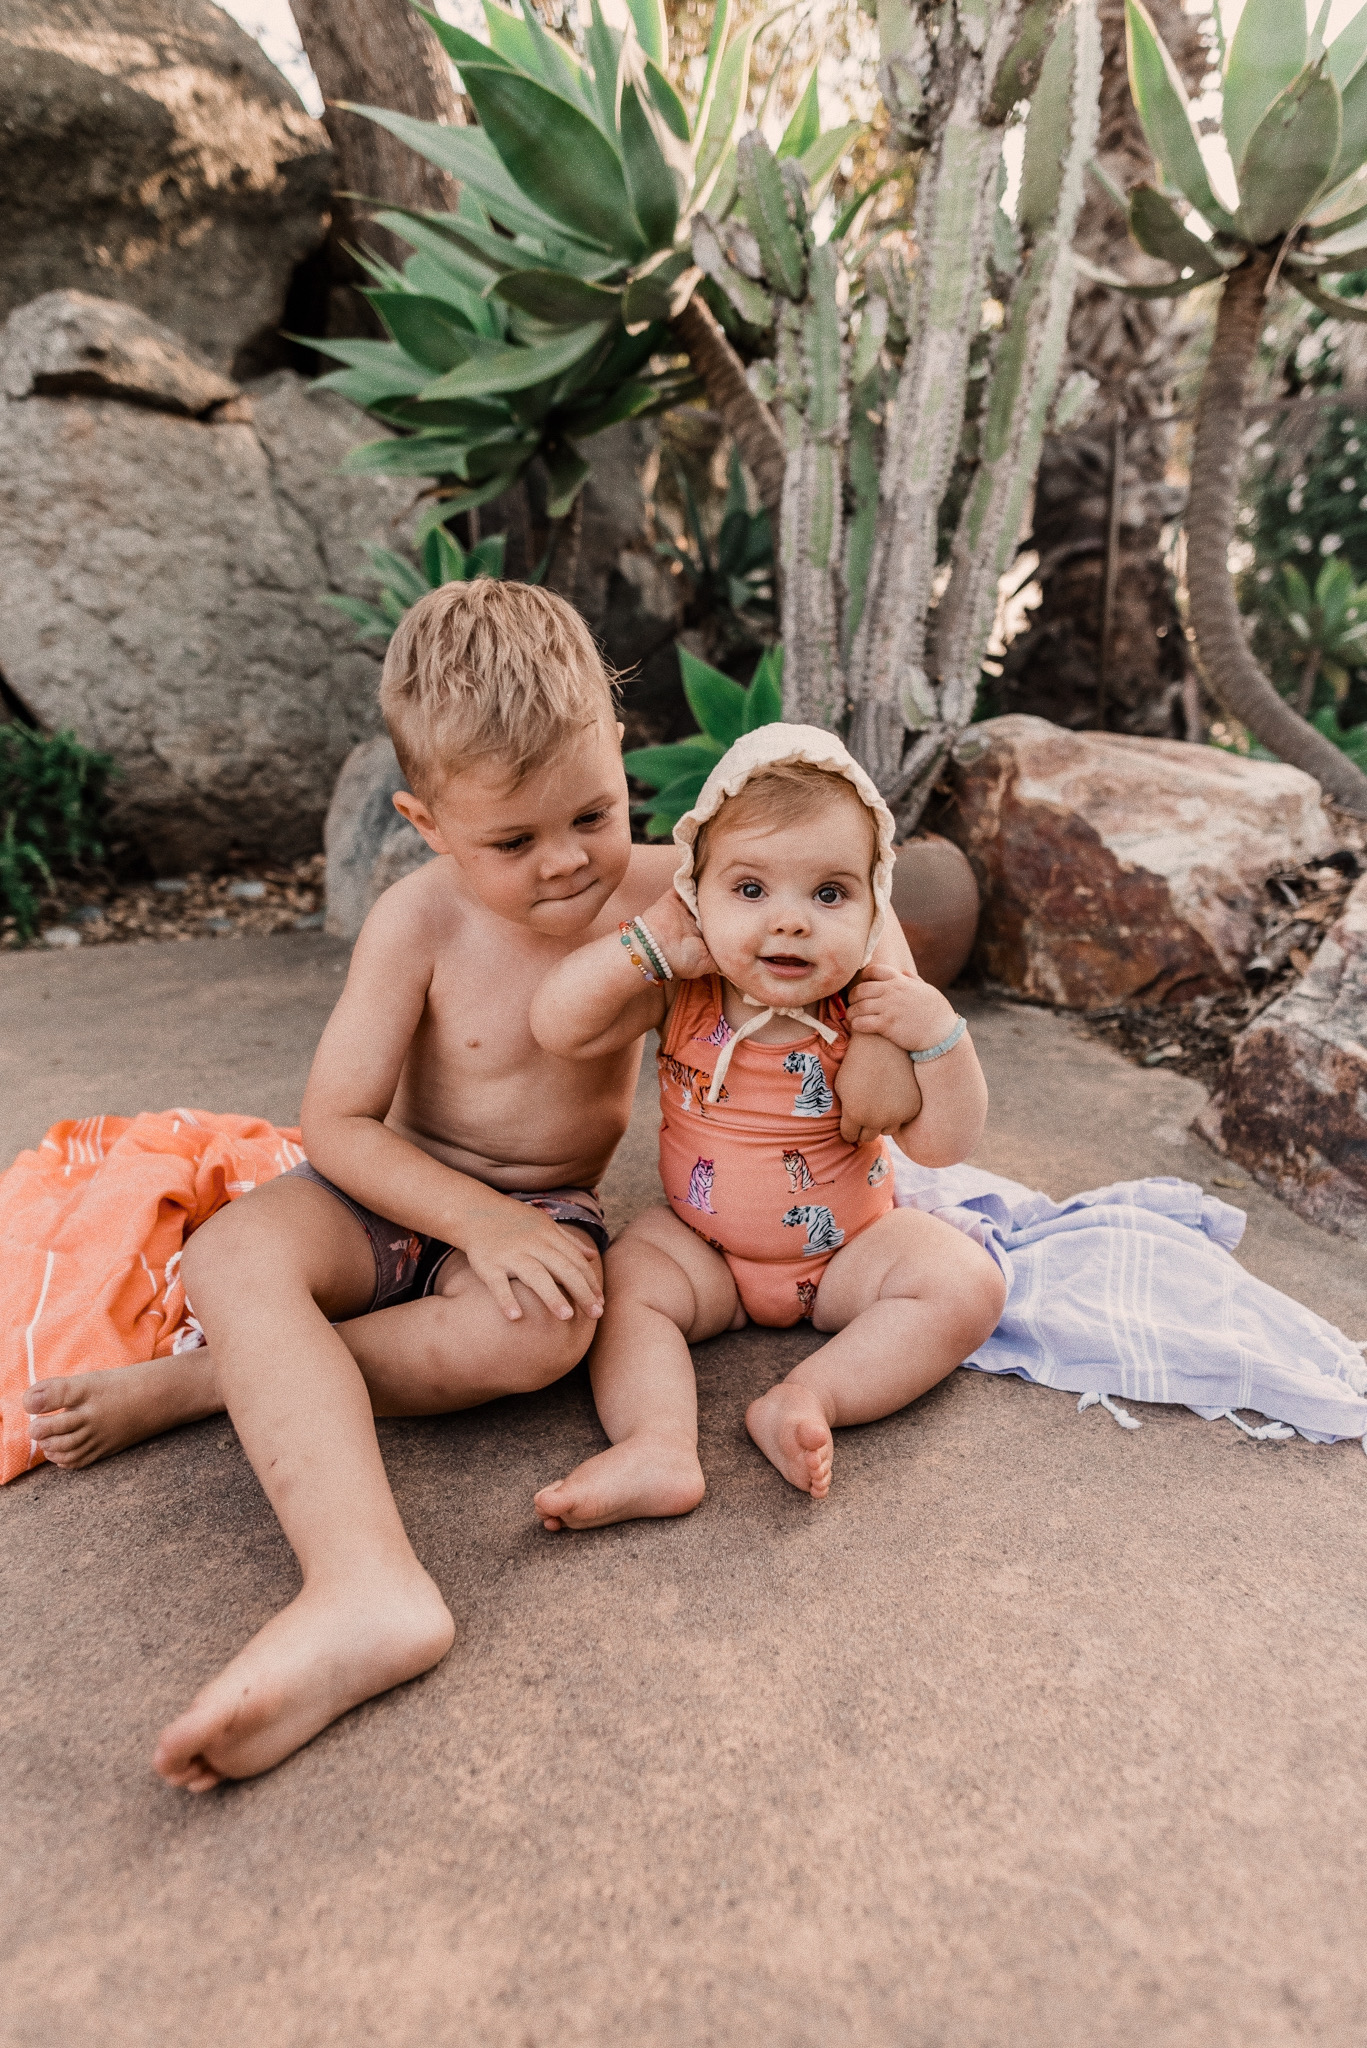 Kids Swimsuits by popular San Diego fashion blog, Navy Grace: image of two kids sitting together outside next to their Turkish towels and wearing swimsuits.